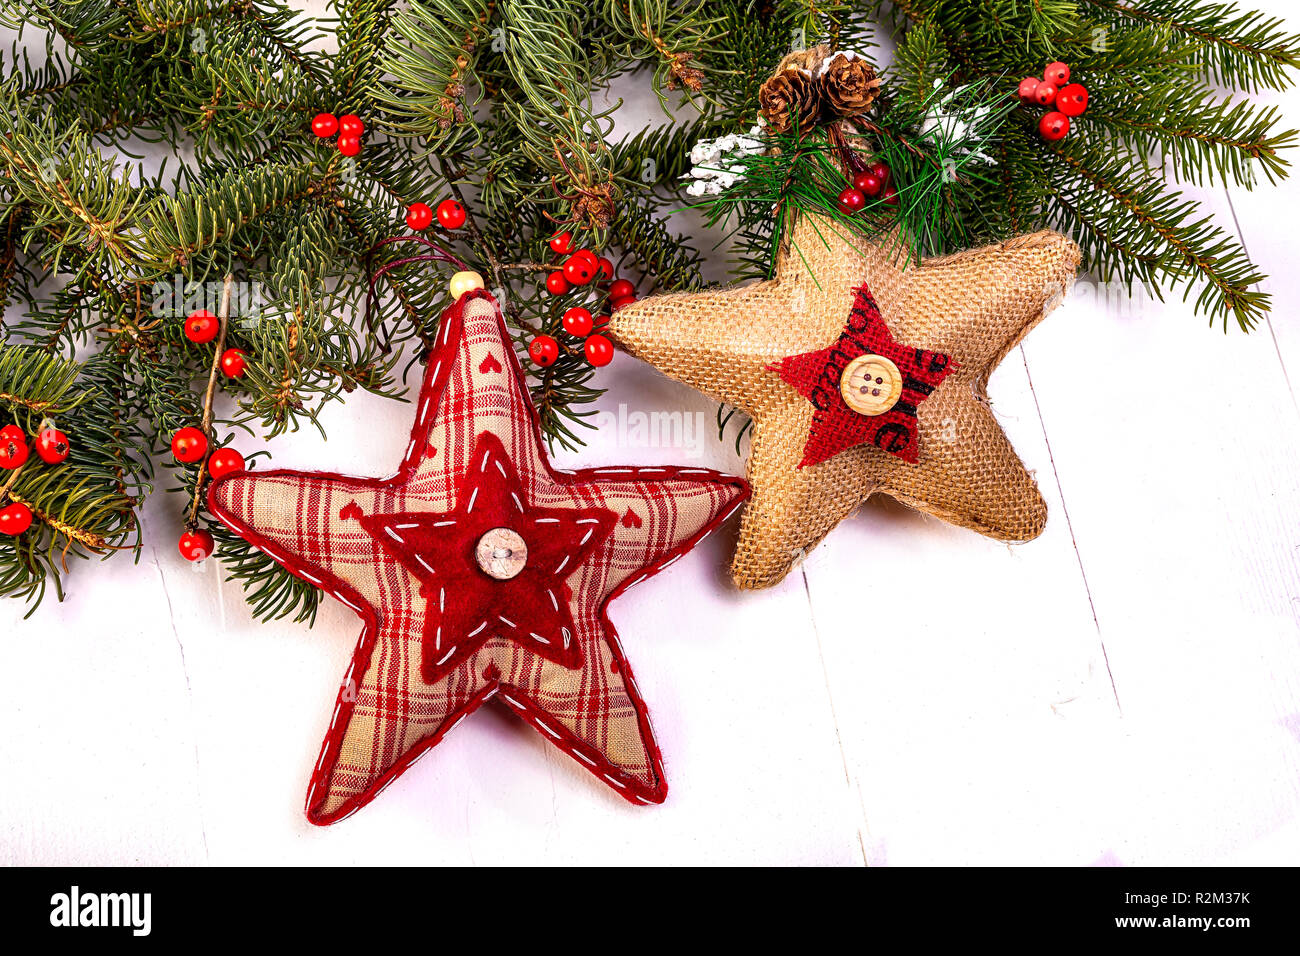 Rustic homemade ornaments flat lay on a wooden background. - Stock Image